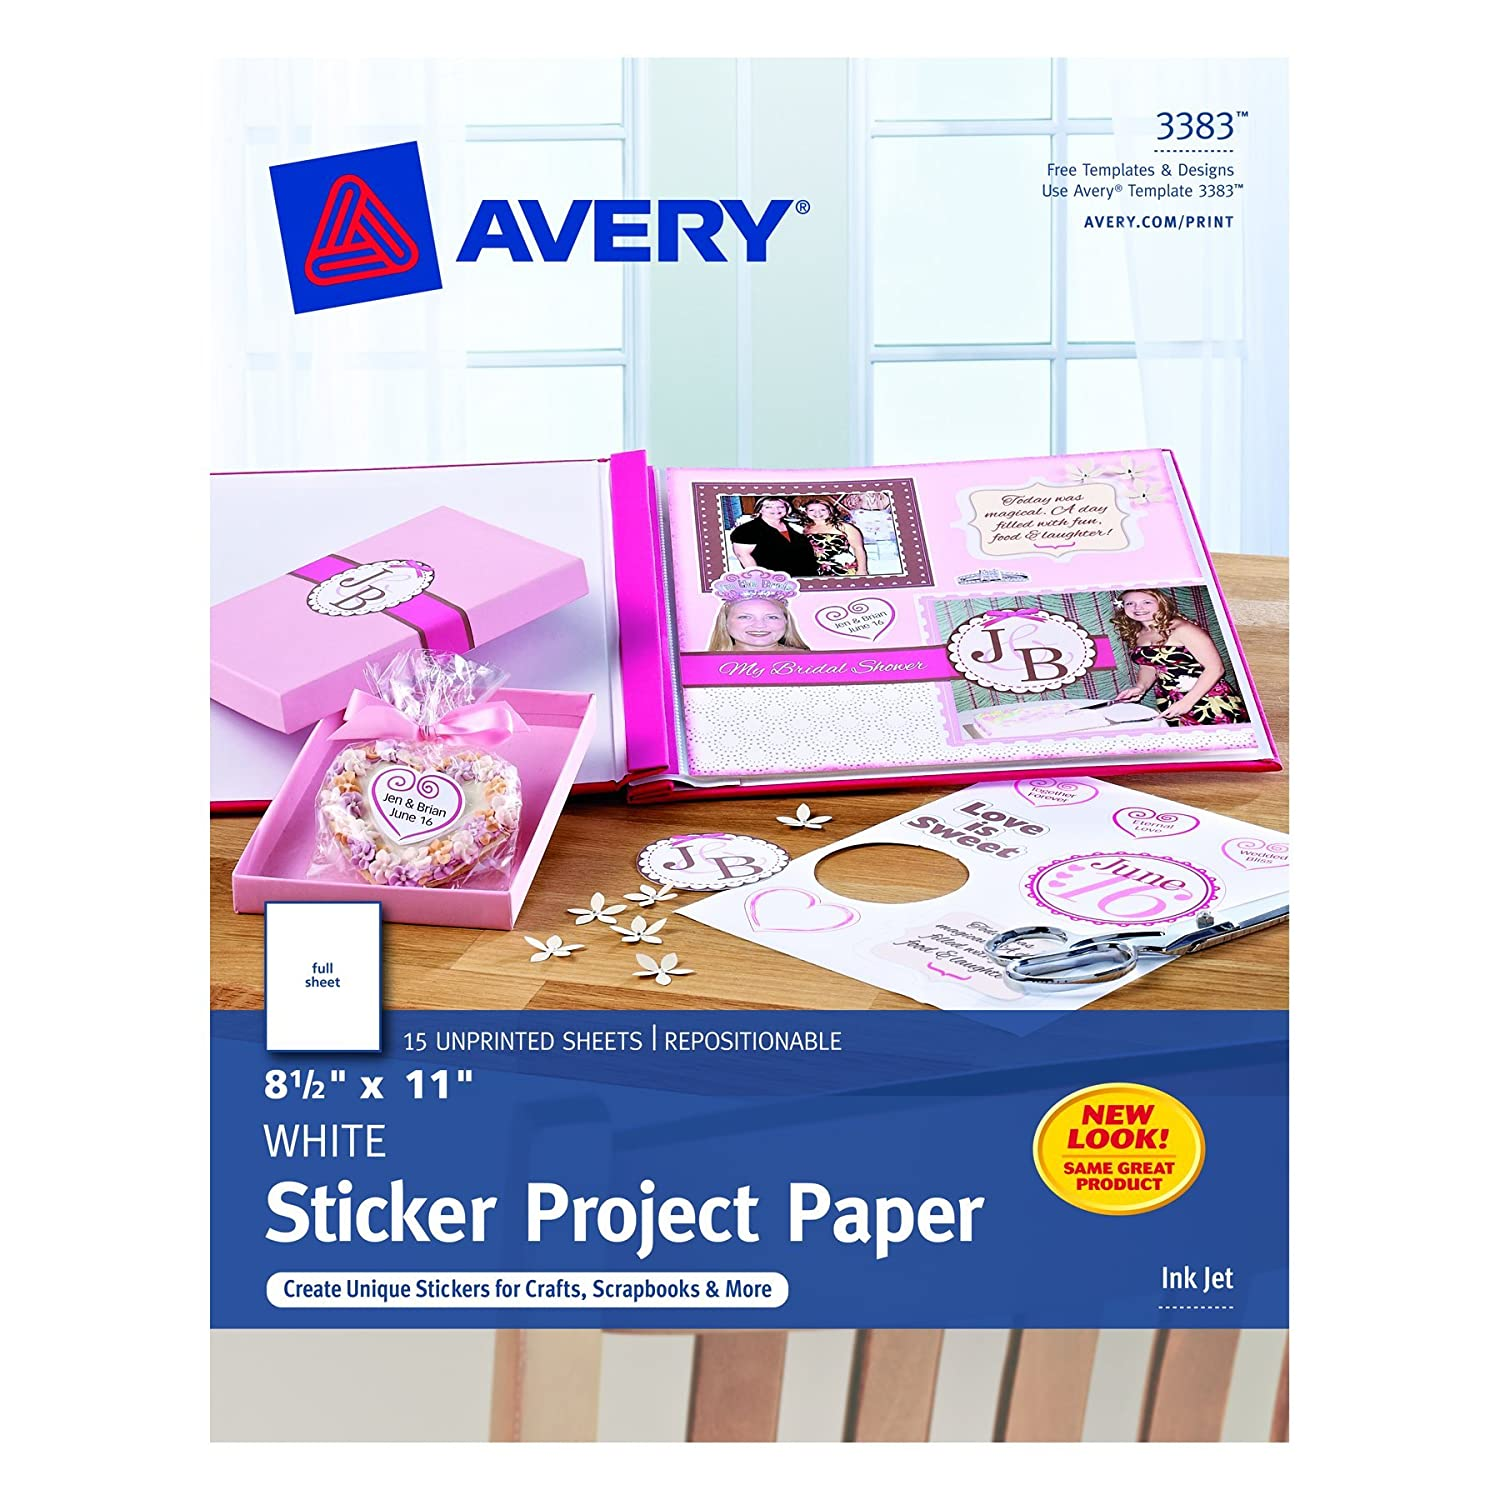 Avery Sticker Project Paper, White, 8.5 x 11 Inches, Pack of 15 (03383)